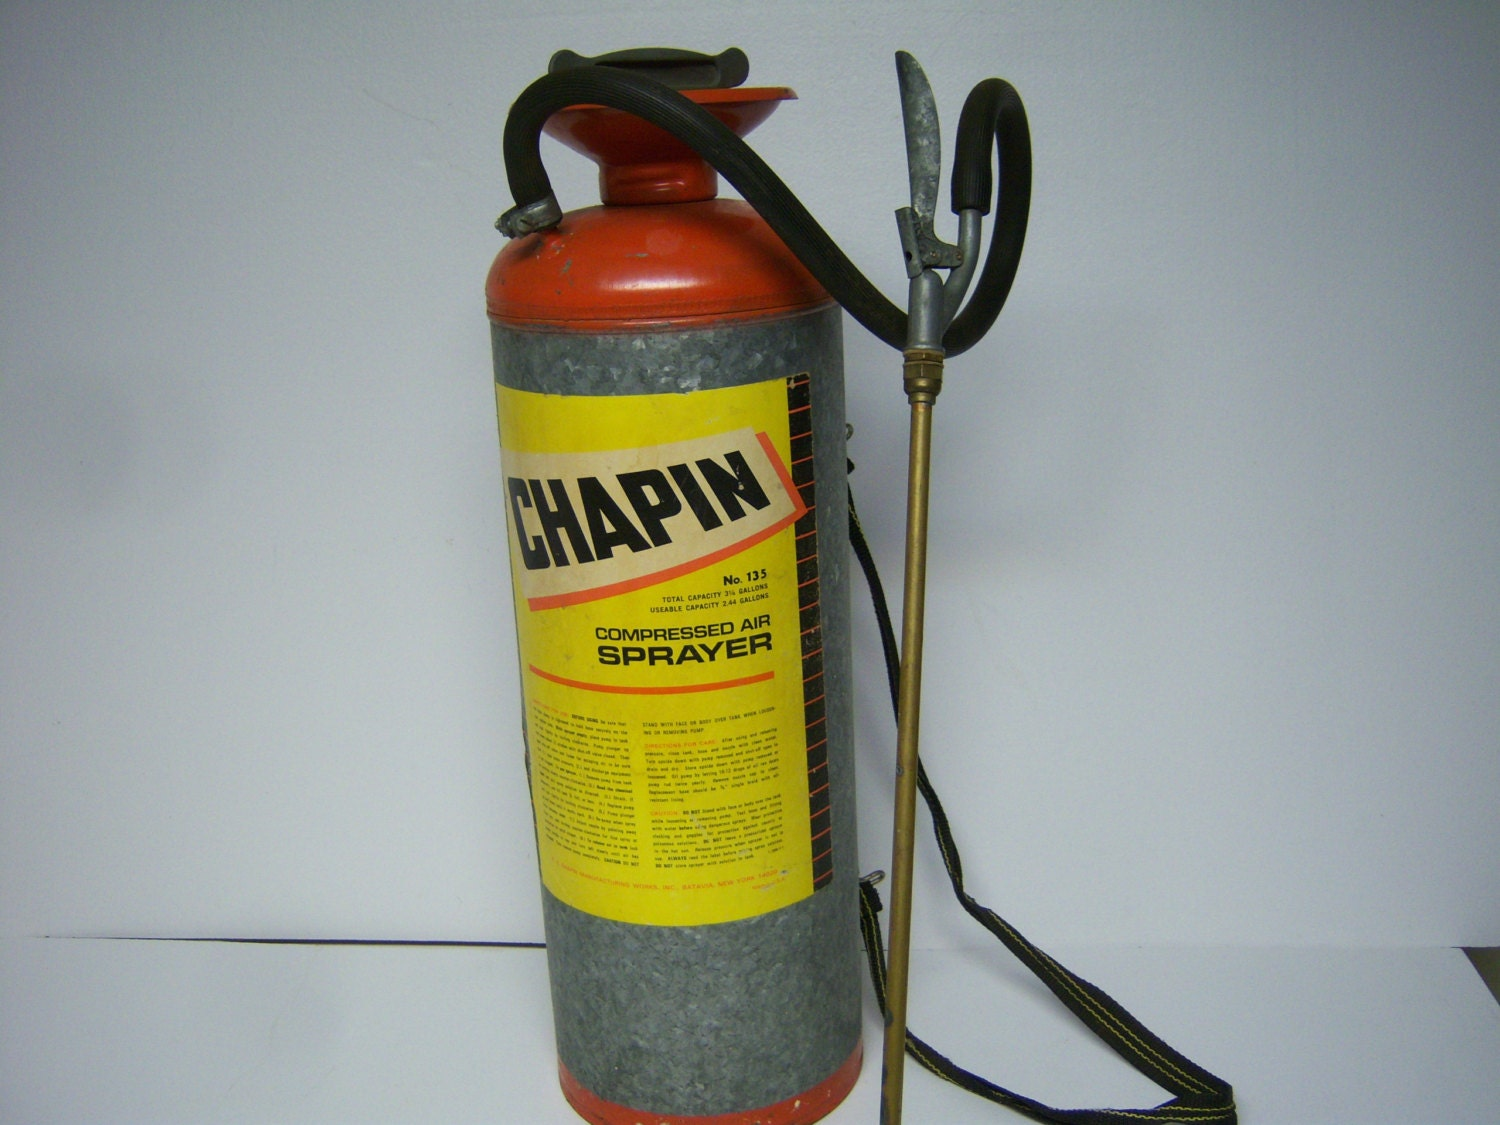 Chapin Compressed Air Sprayer, Vintage Garden Sprayer, #135, Good Used  Condition, Capacity 3 25 Gallons, Metal and Rubber Hose, Up Cycle